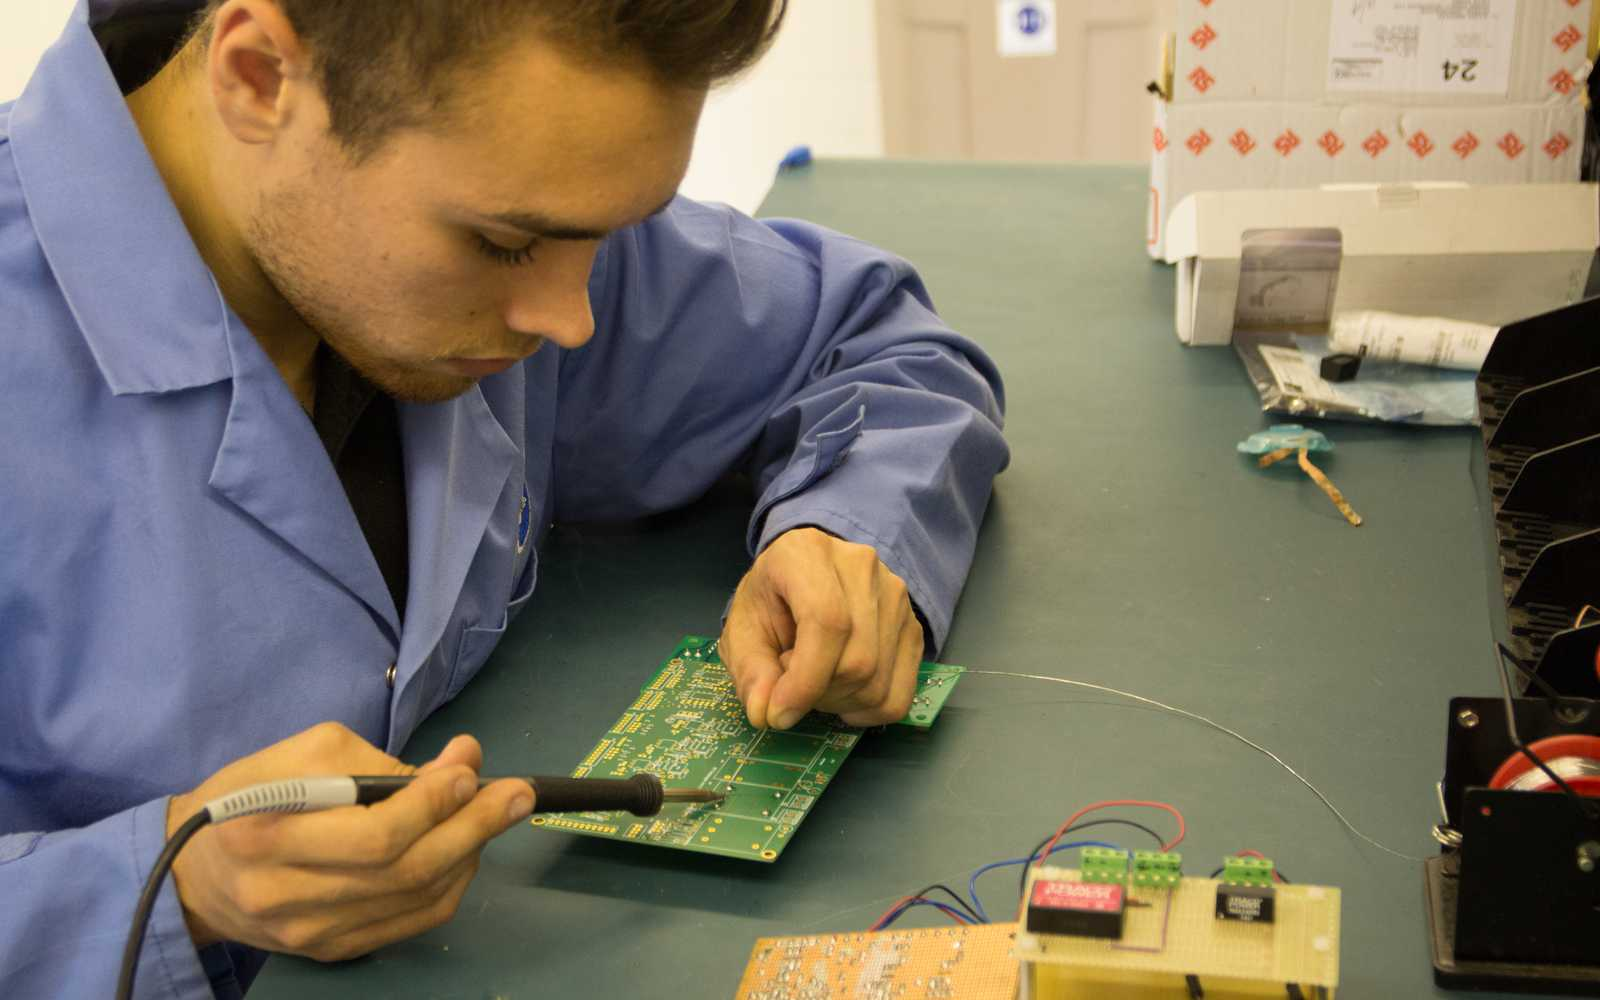 Electronic Repair, Overhaul & Redesign